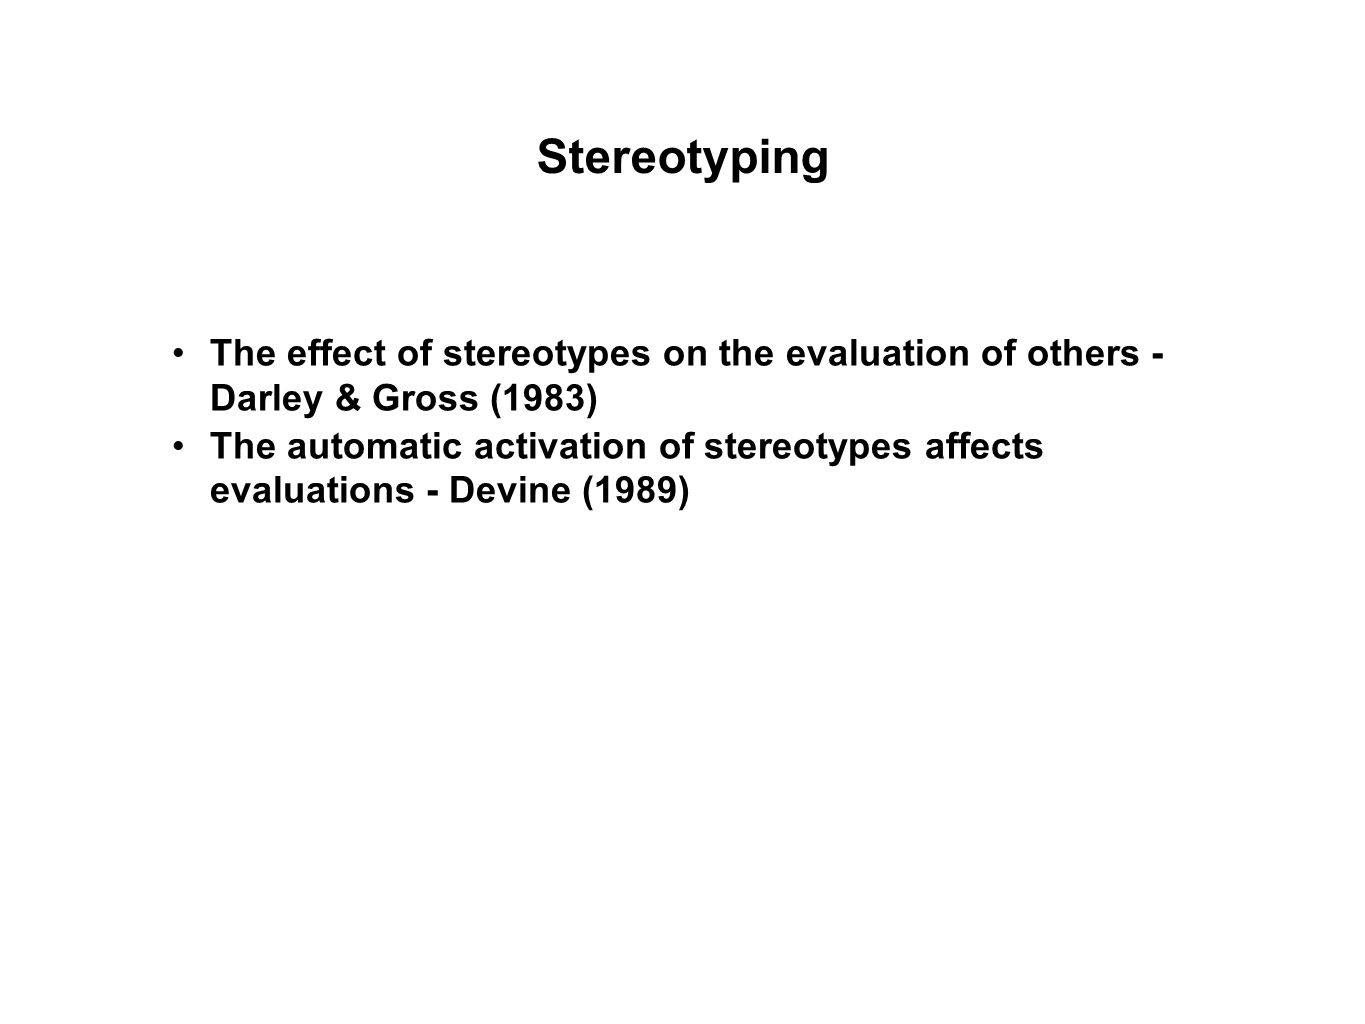 Stereotyping The effect of stereotypes on the evaluation of others - Darley & Gross (1983)